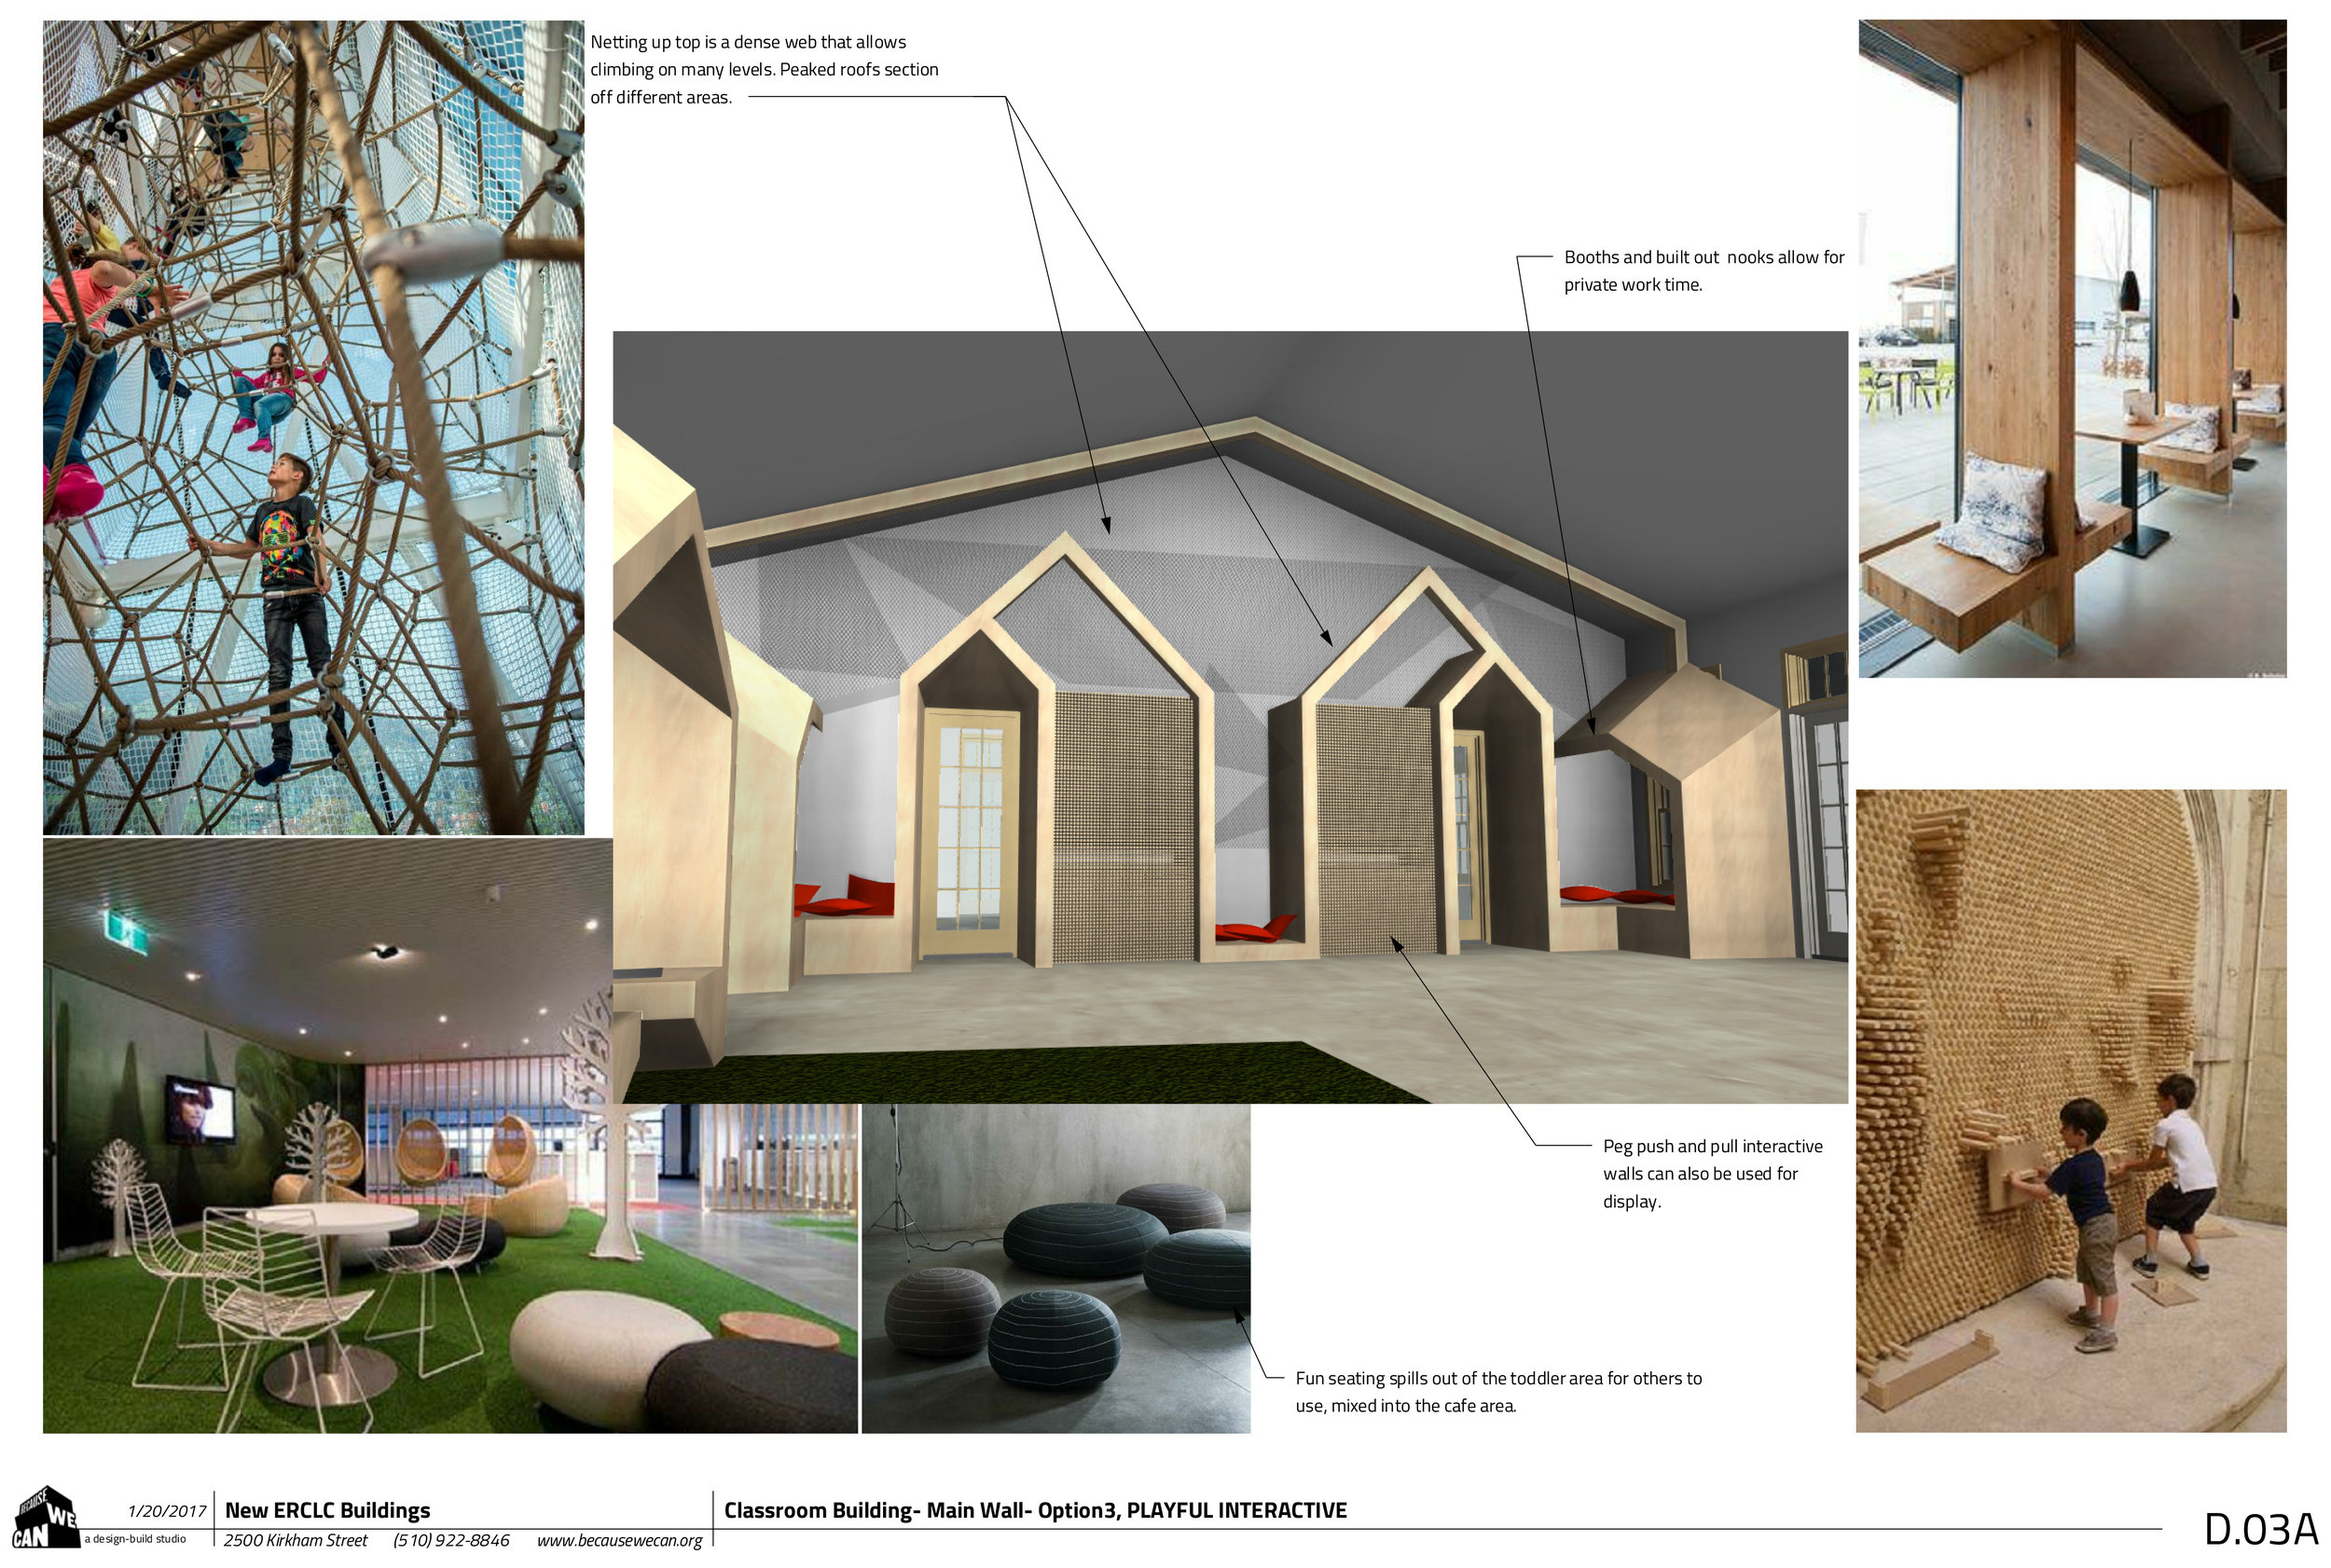 Some early design ideas for the parent lounge building, keeping the kids and younger siblings entertained while they wait.